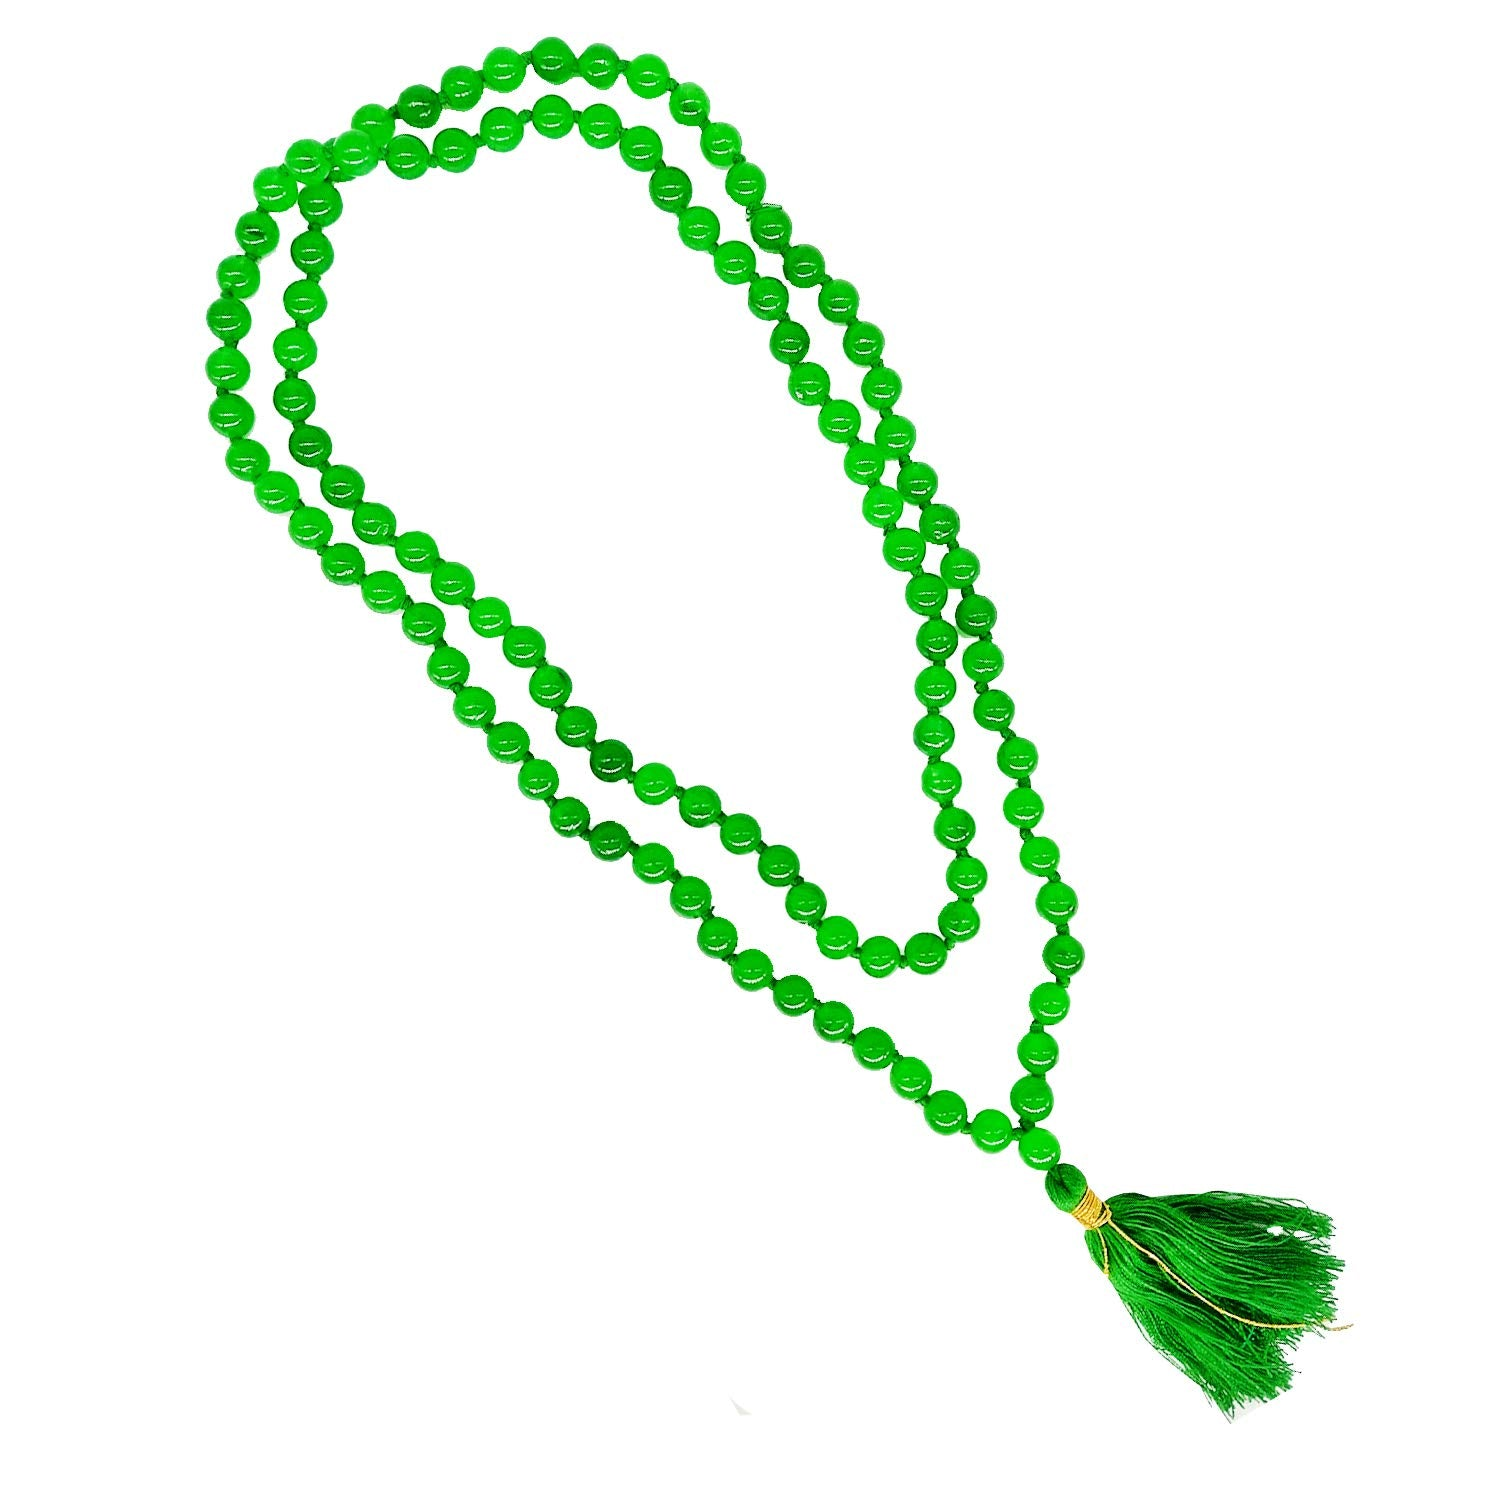 Natural Stones Emerald Green Sphatik Crystal Beads Mala with 108+1 Beads - Bagaholics Gift